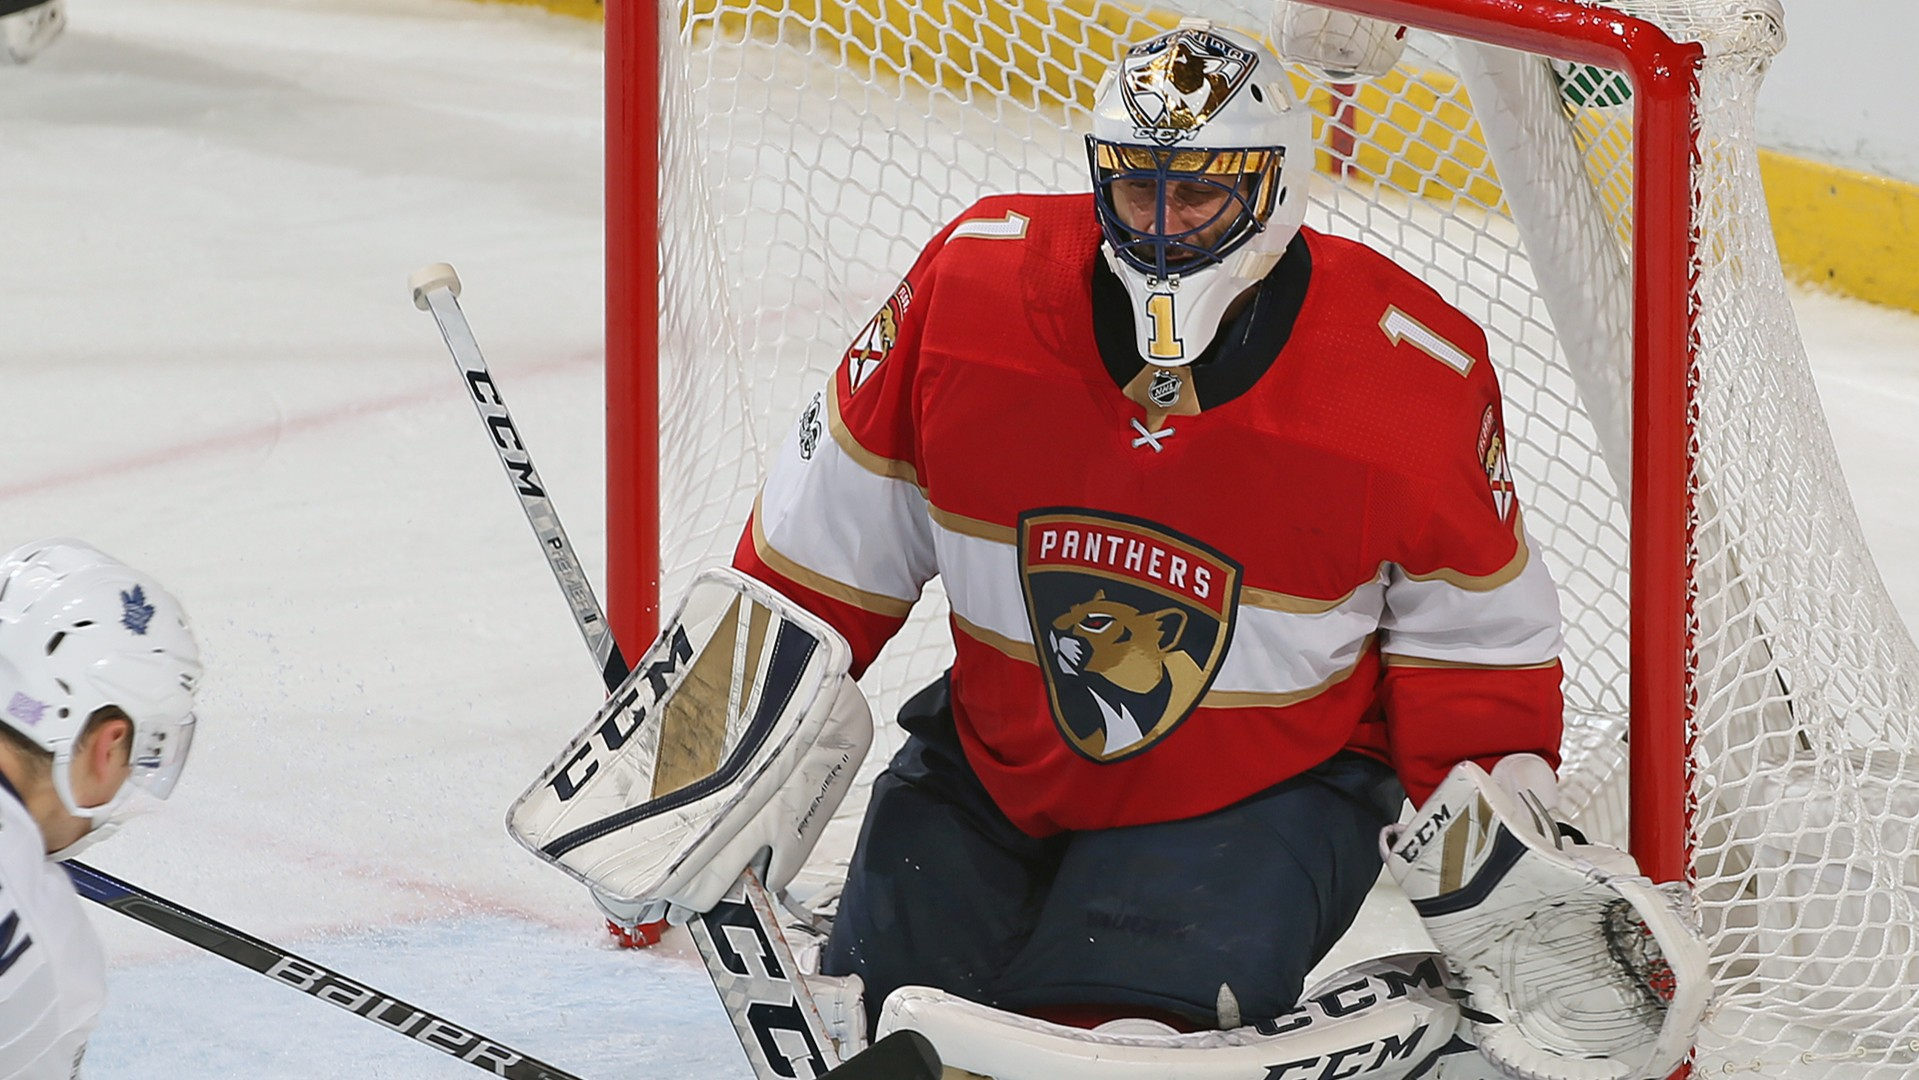 Panthers Roberto Luongo Moves Into Second Place For Career